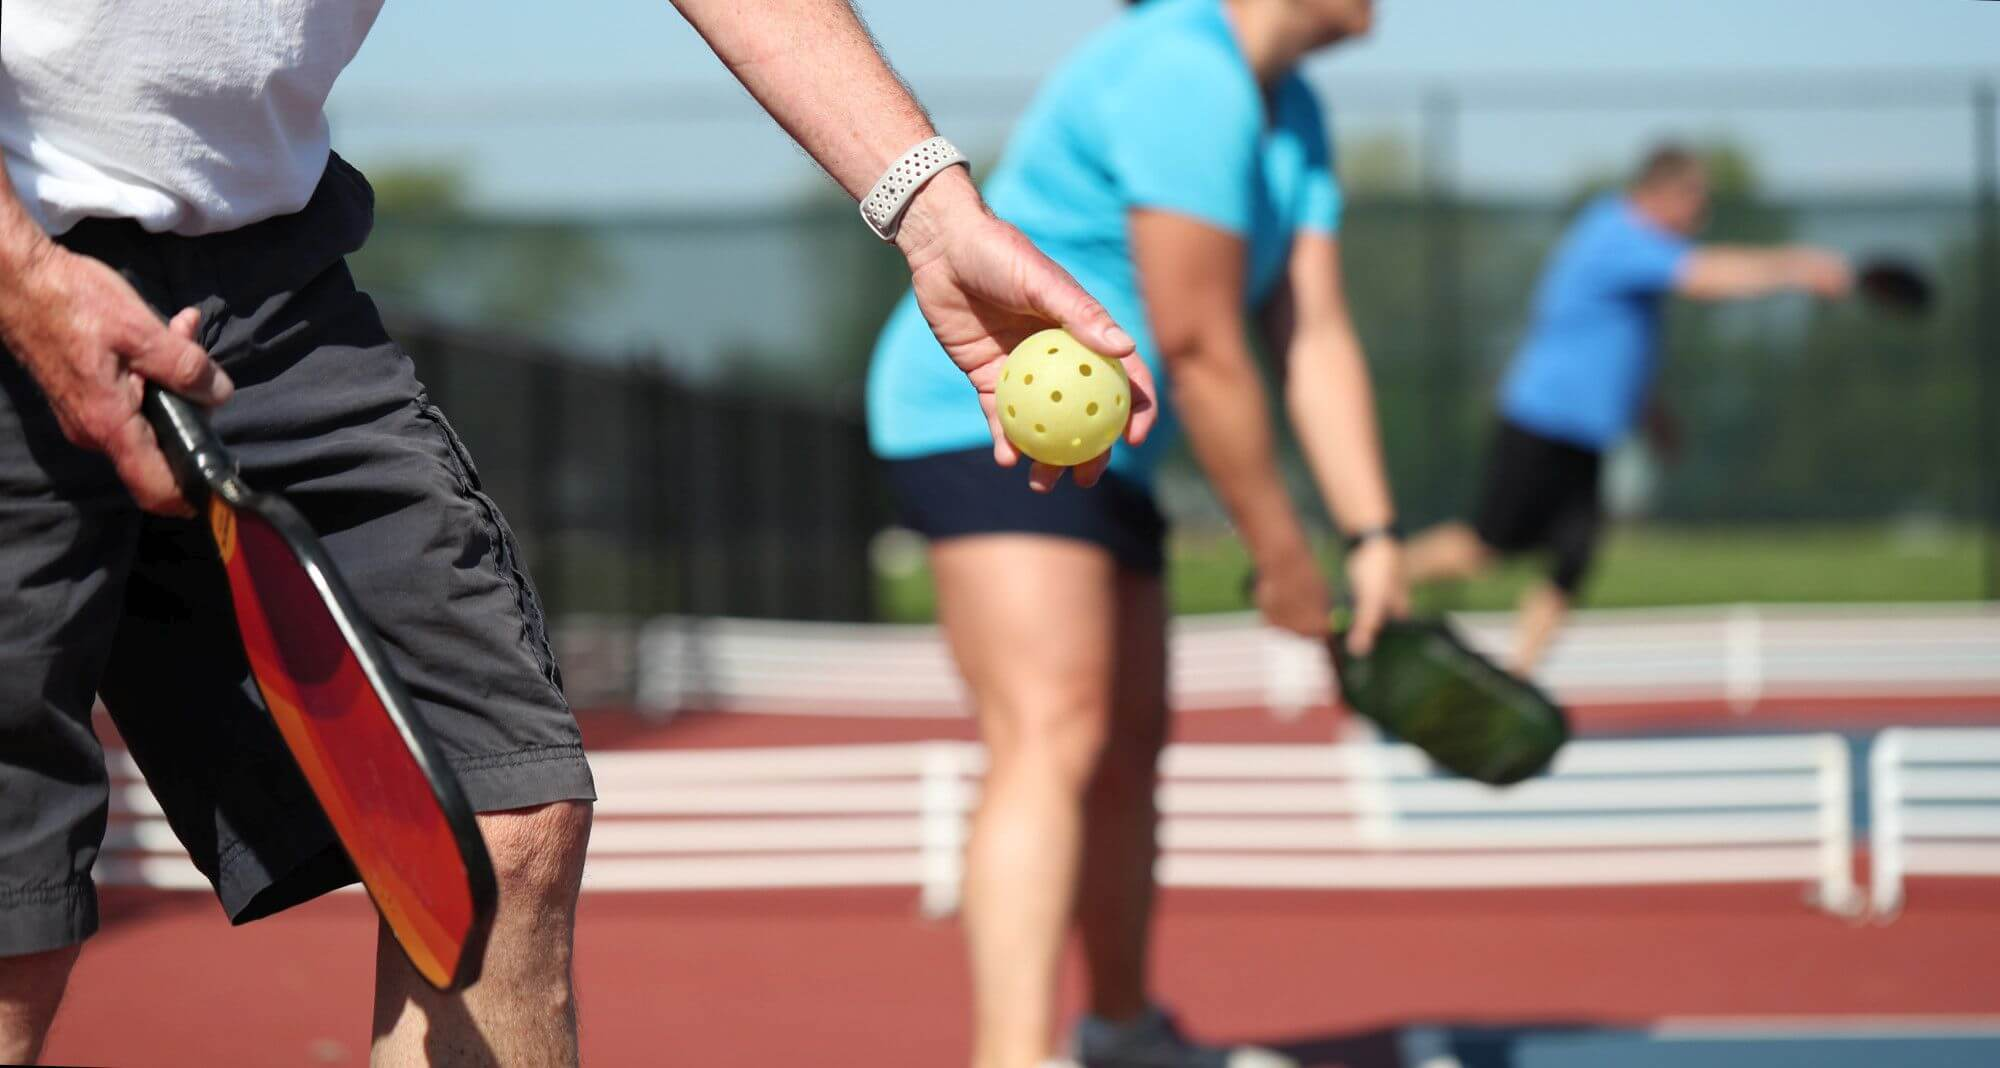 What is Pickleball? A Guide on How to Play and the Basic Rules